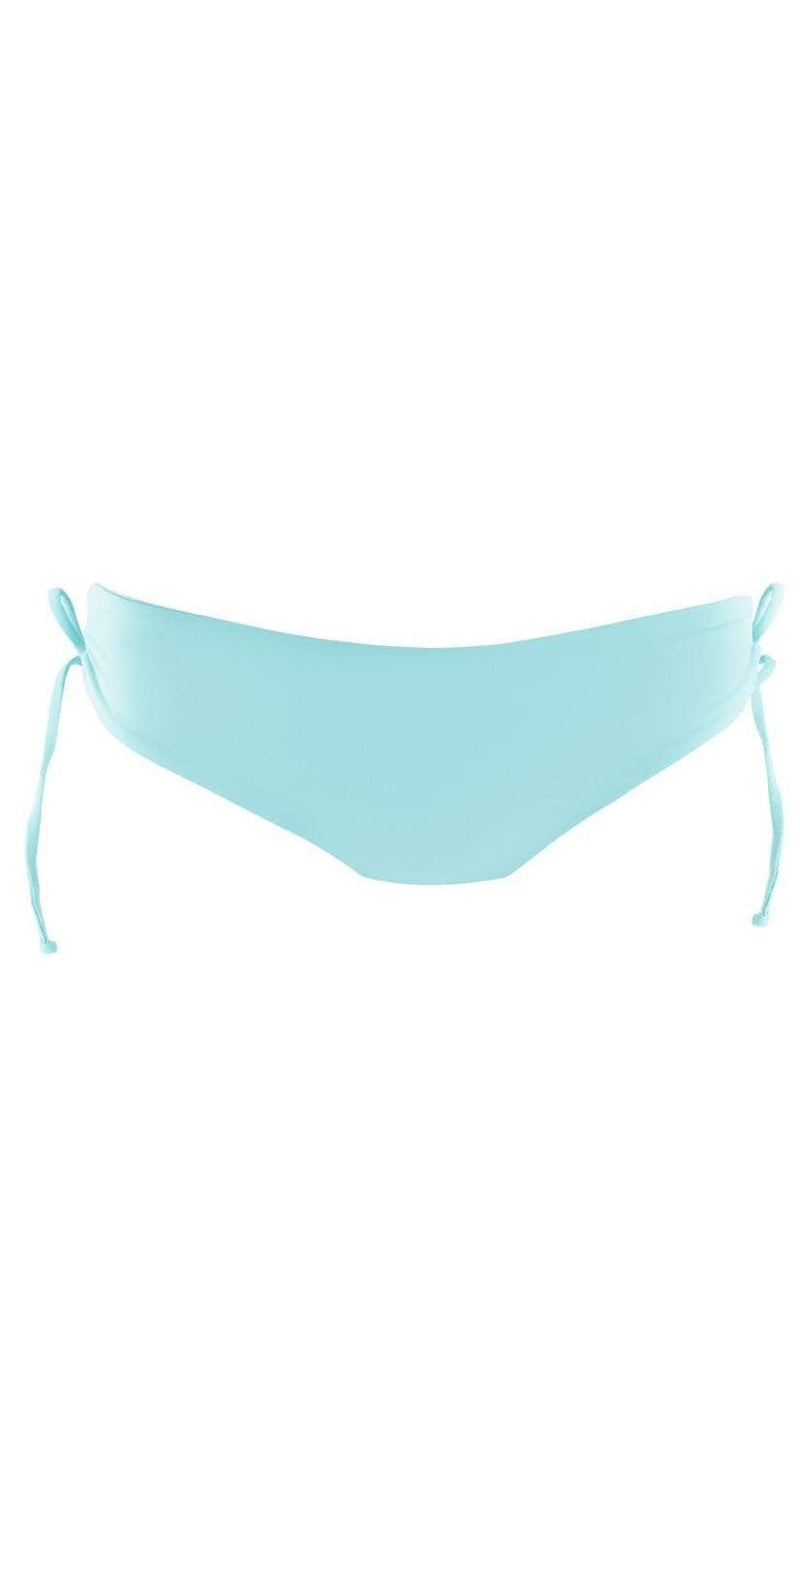 L Space Ella Bottom In Light Turquoise LSEAC18-LIT: